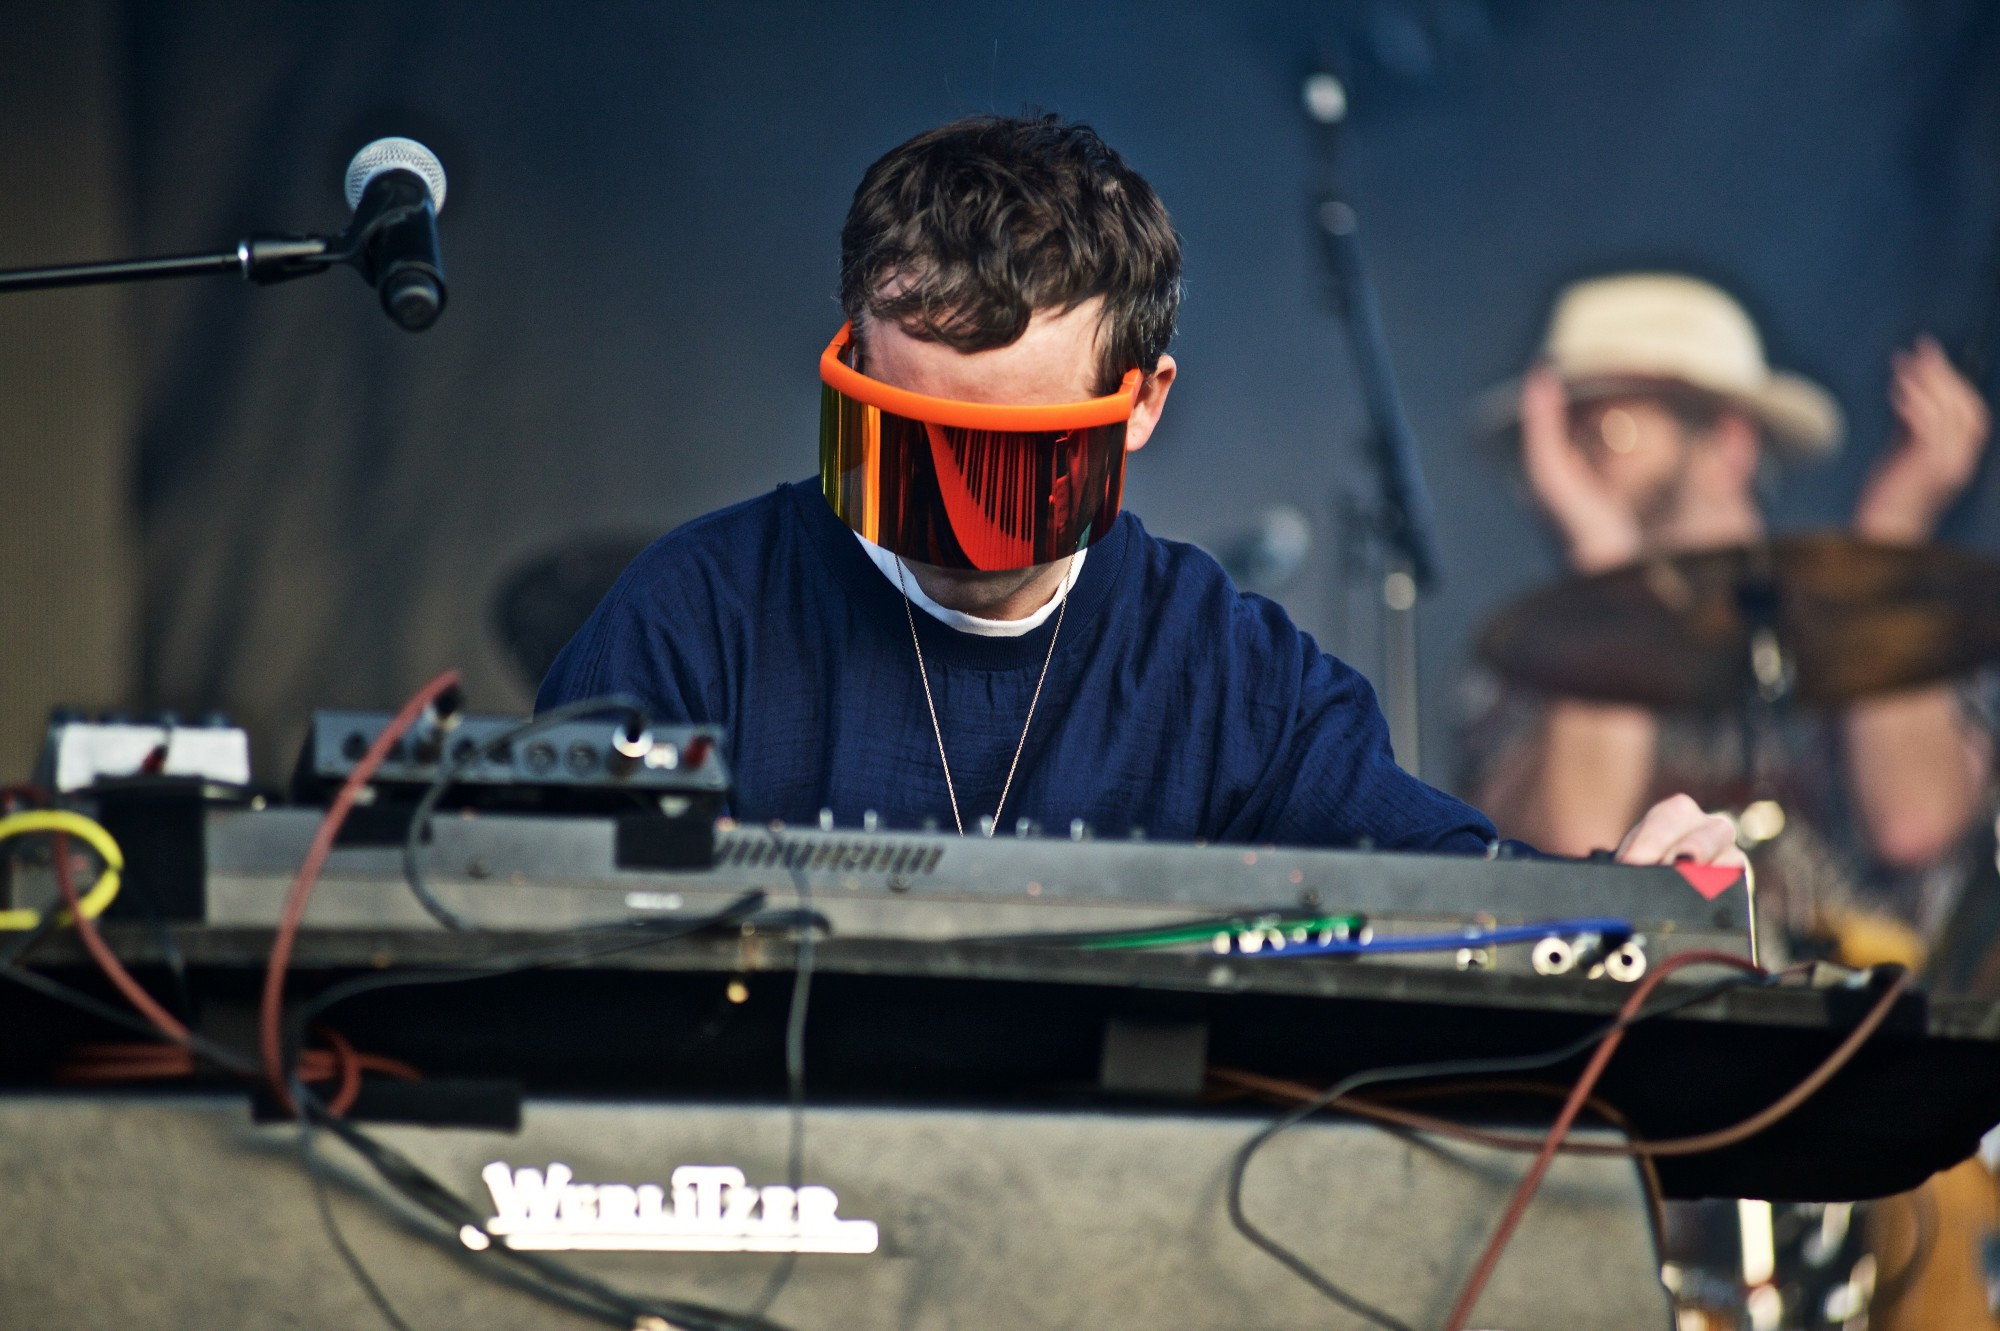 Hot Chip performs at The Governors Ball Music Festival